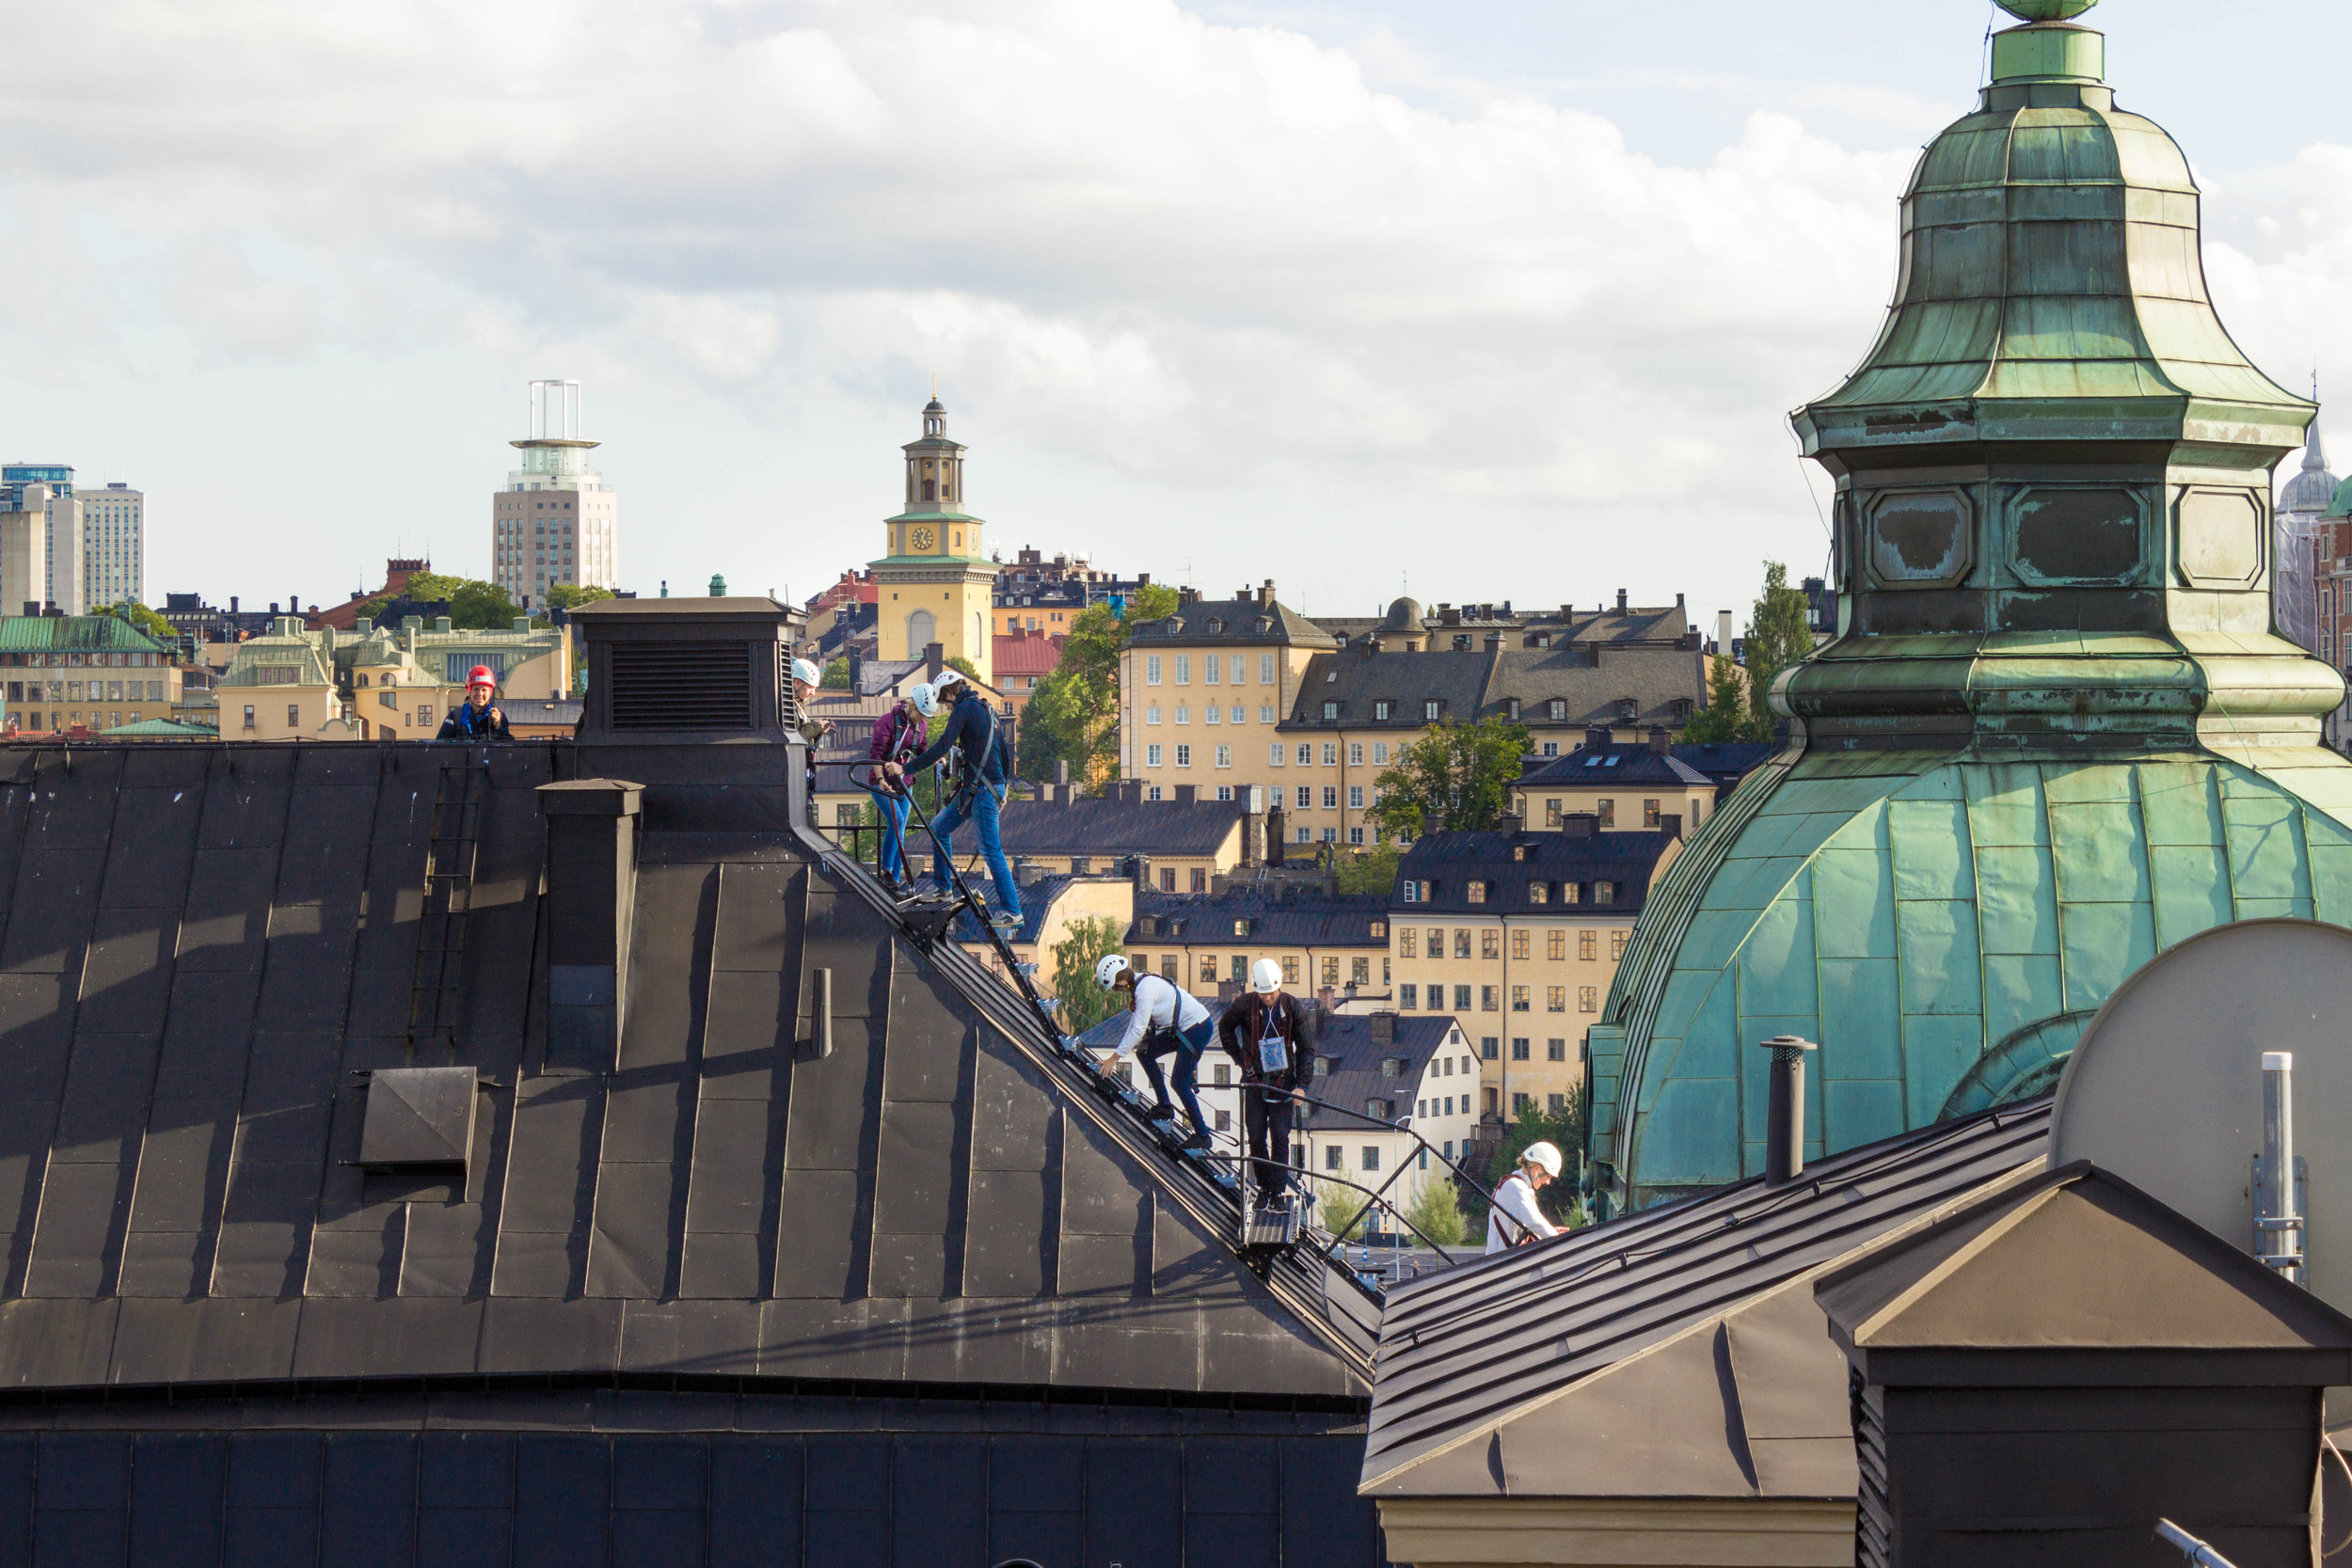 Touring Stockholm by rooftop